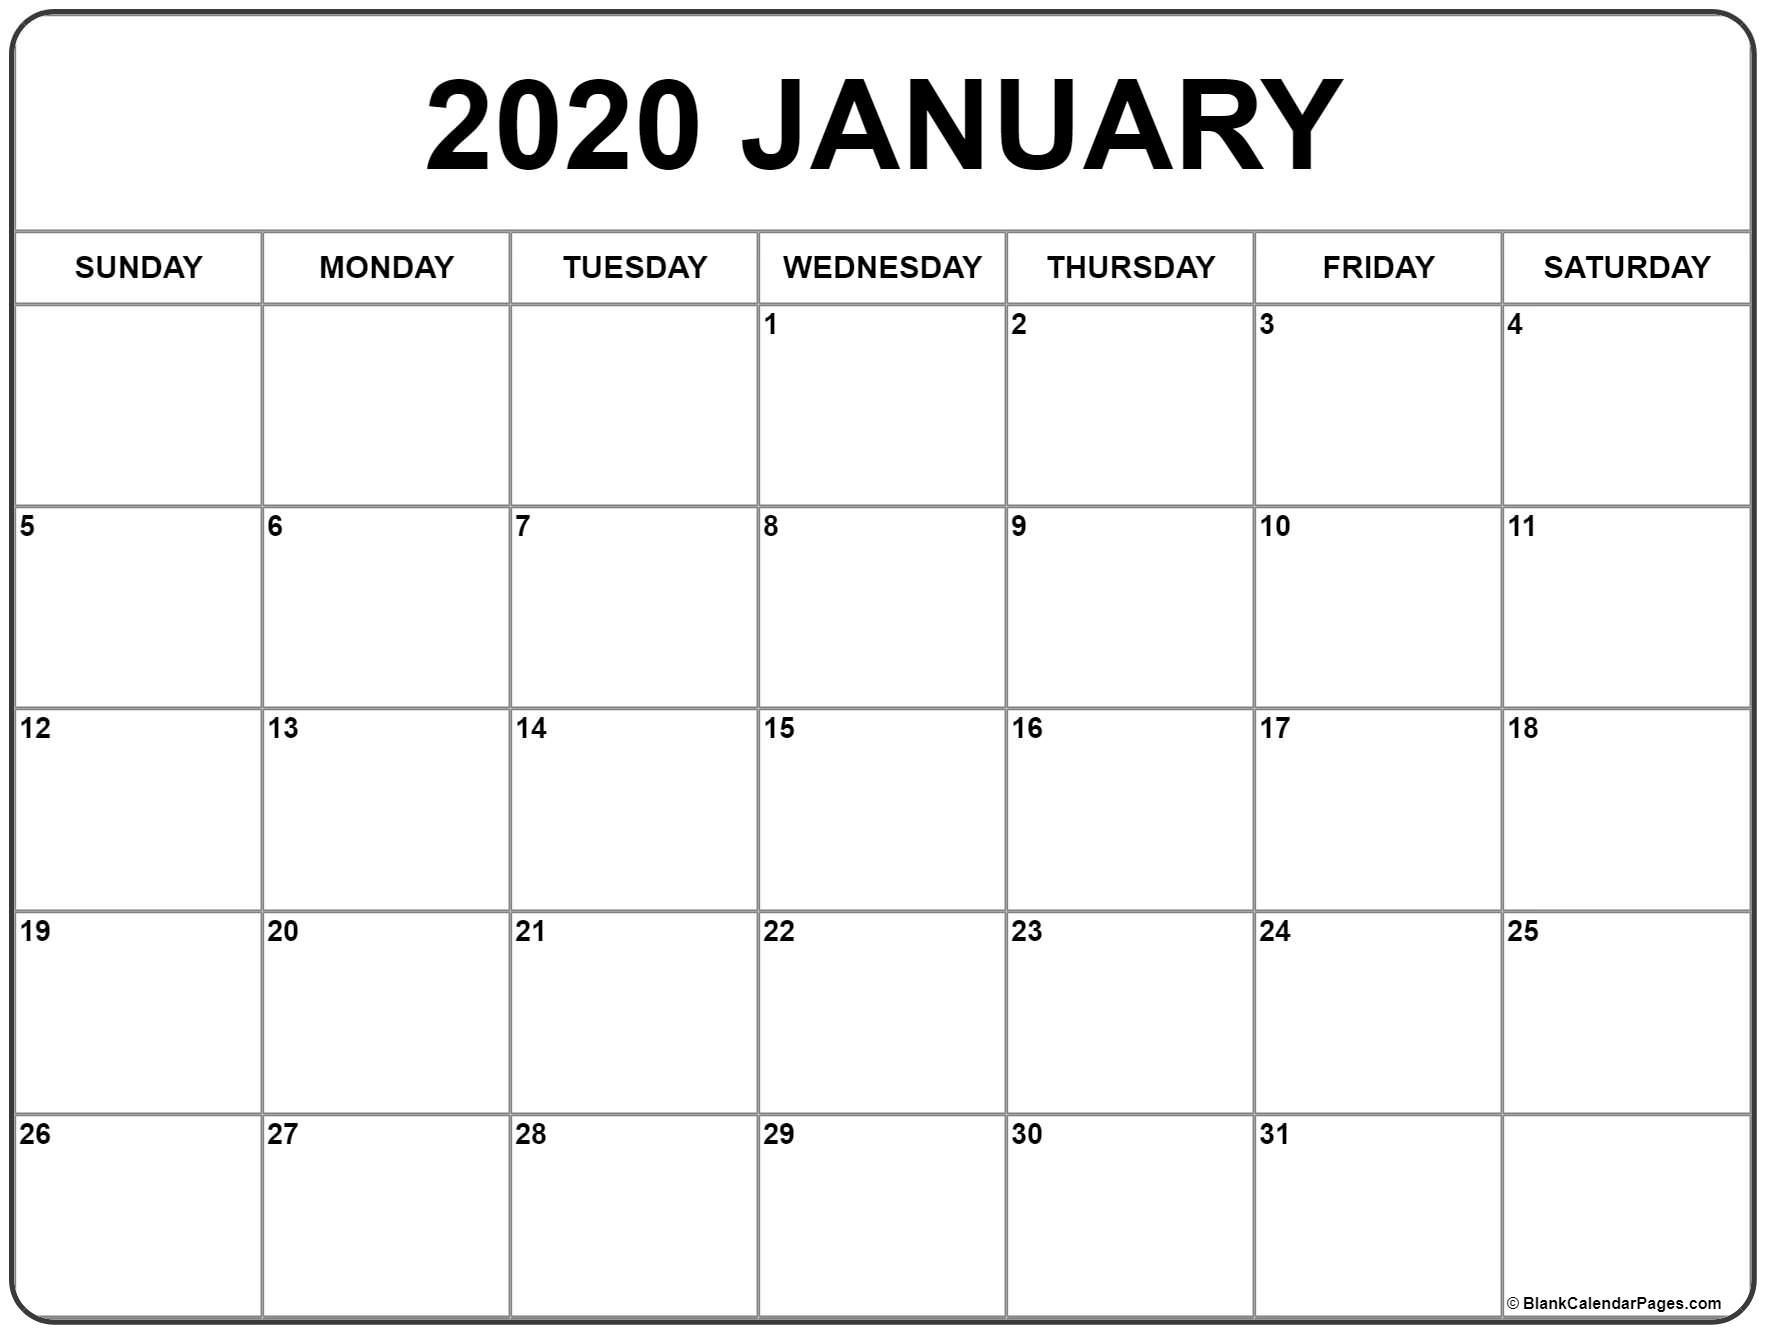 January 2020 Calendar | Free Printable Monthly Calendars  2020 Printable Calendar Free Full Page